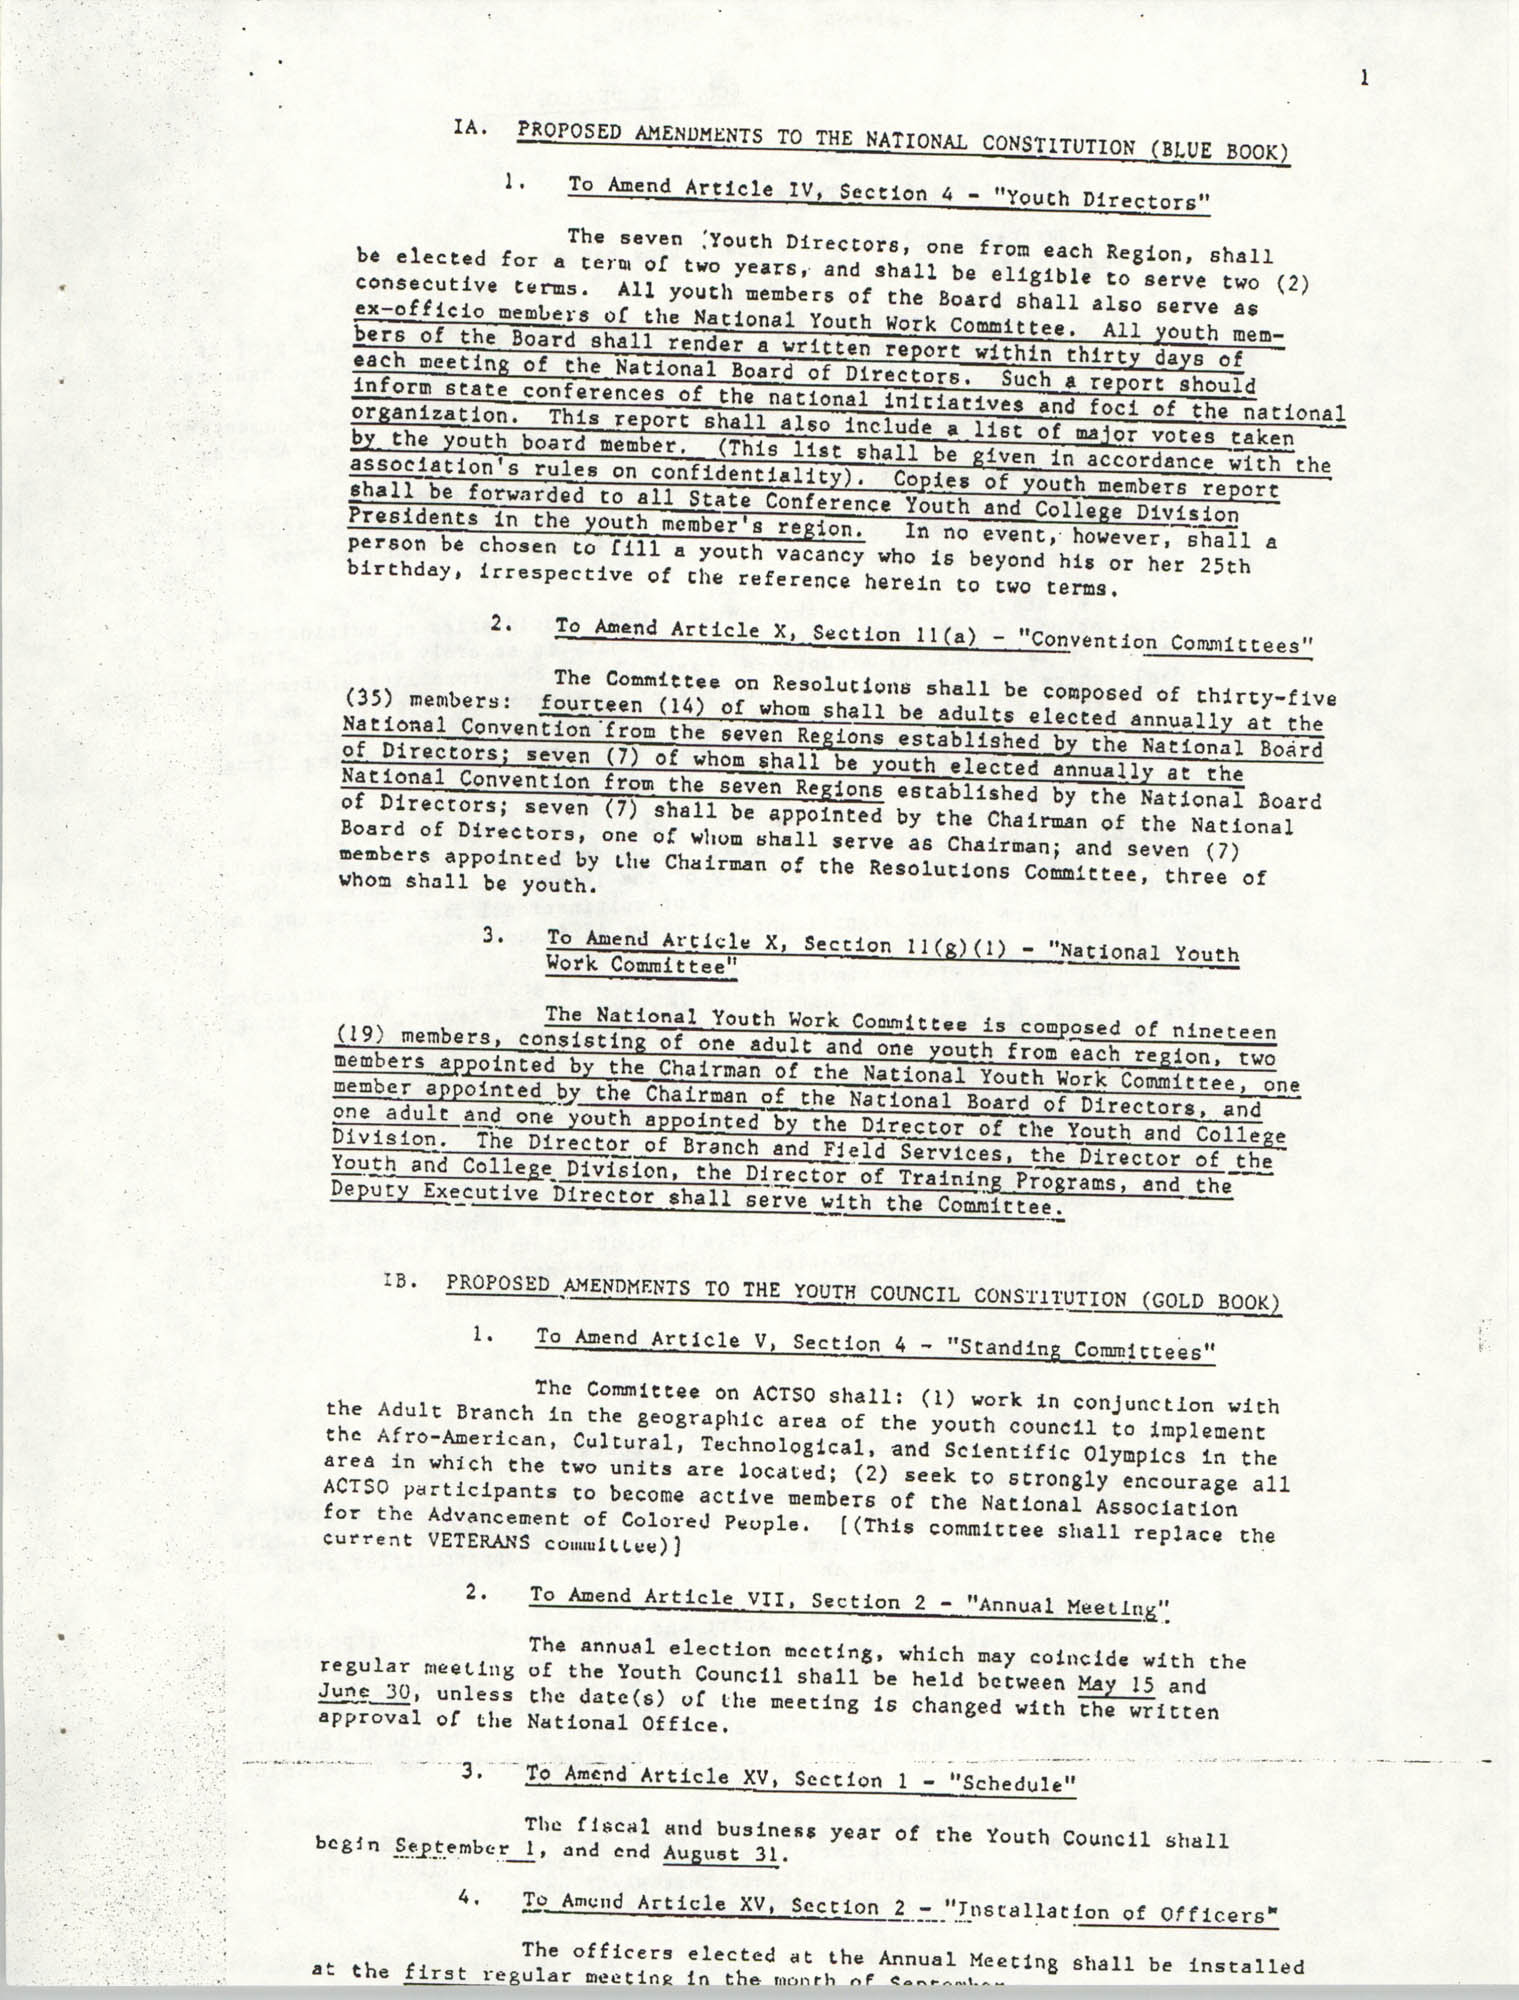 Resolutions Submitted Under Article X, Section 2 of the Constitution of the NAACP, Page 1